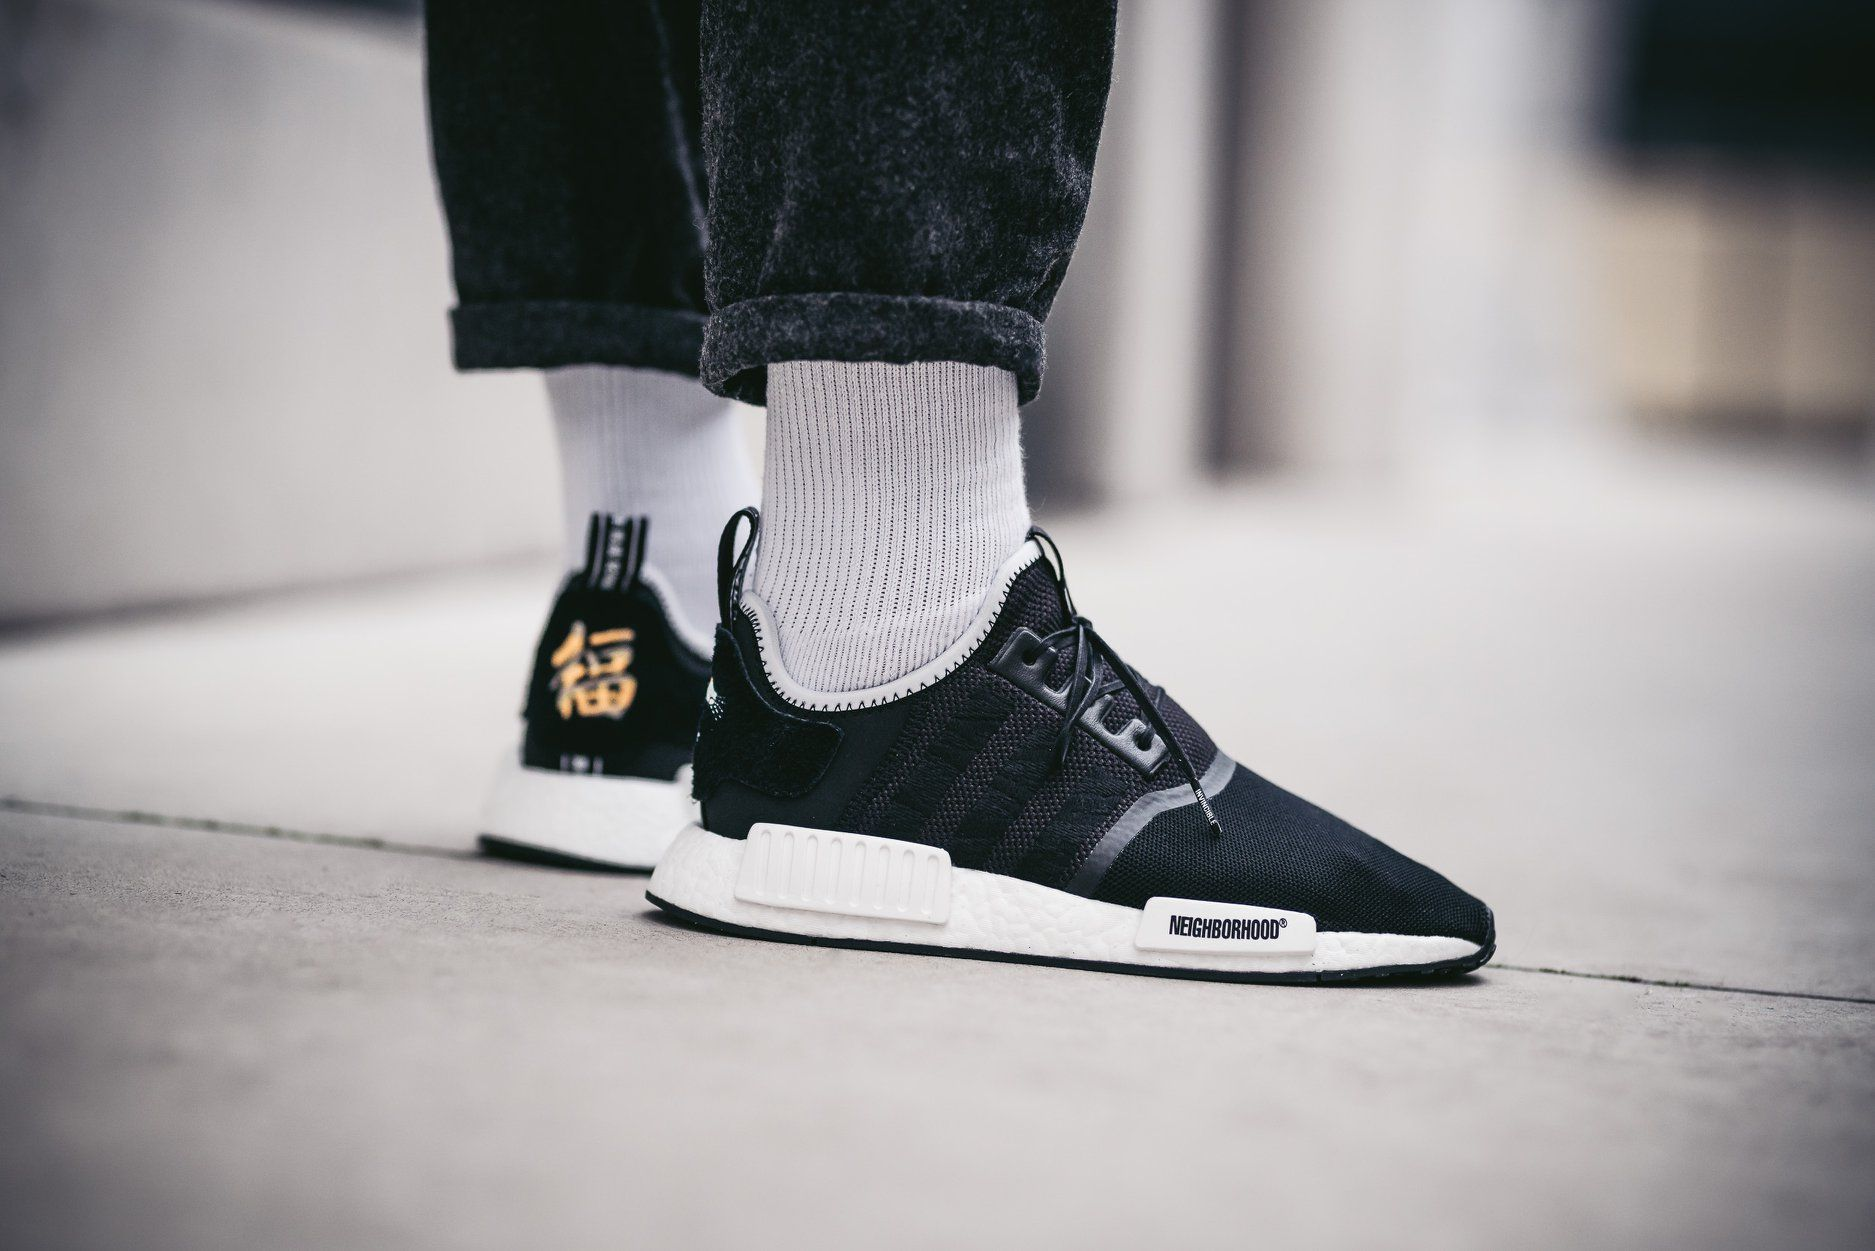 2bd6c13ed Invincible x Neighborhood x adidas Consortium NMD R1 - Grailify Sneaker  Releases